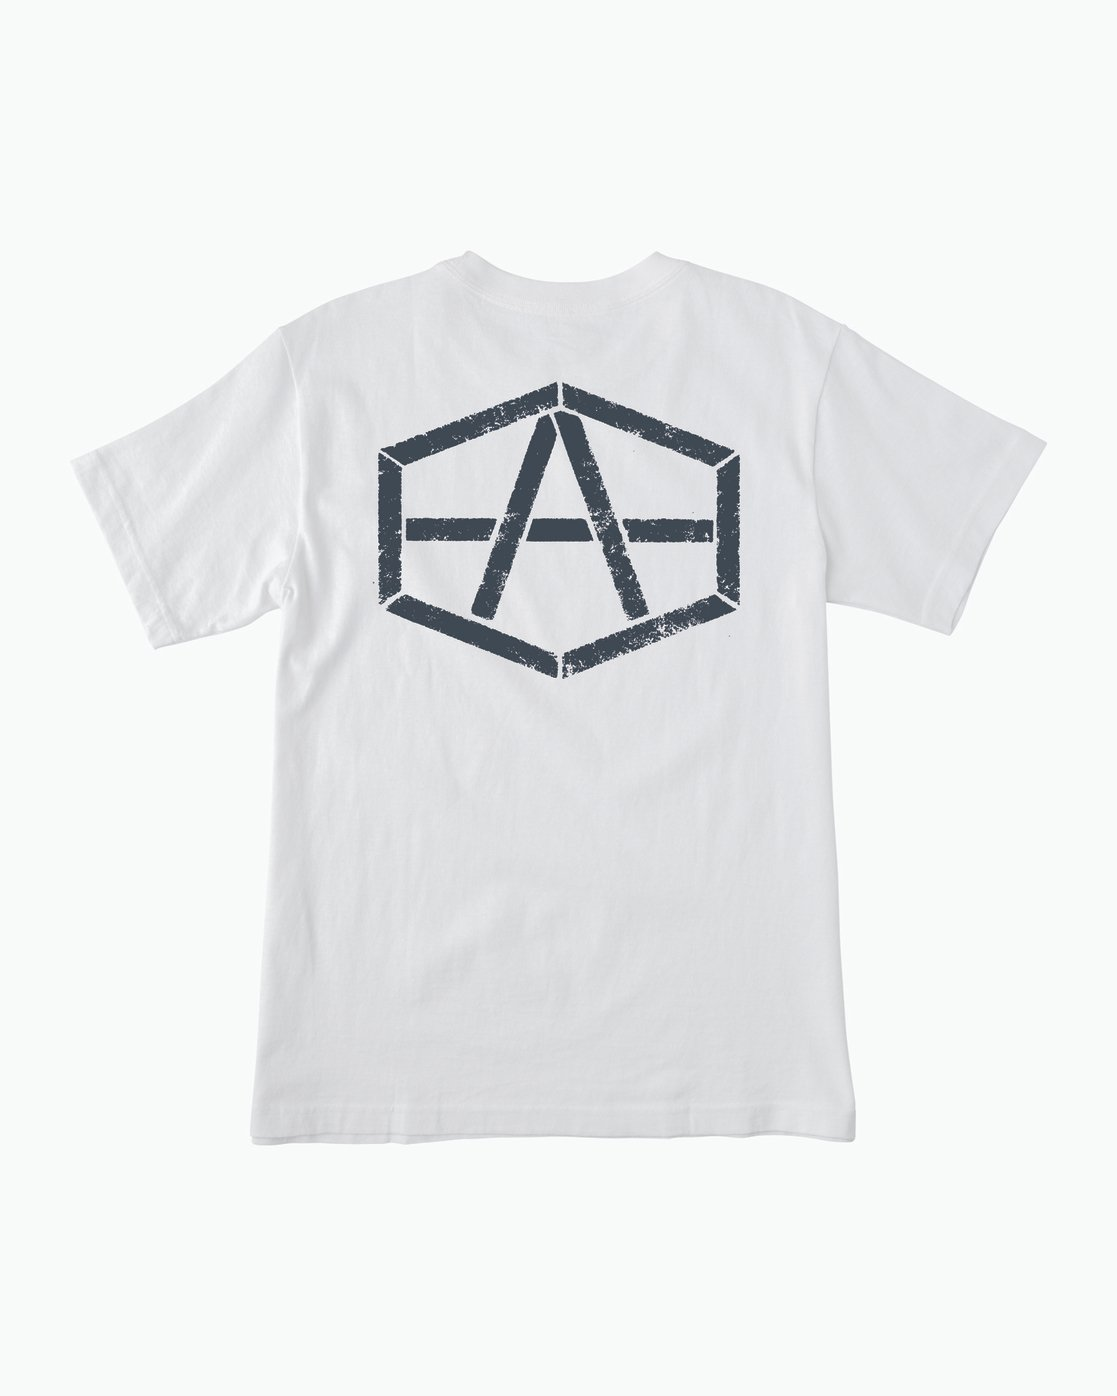 0 Andrew Reynolds Stencil T-Shirt White M410SRRE RVCA